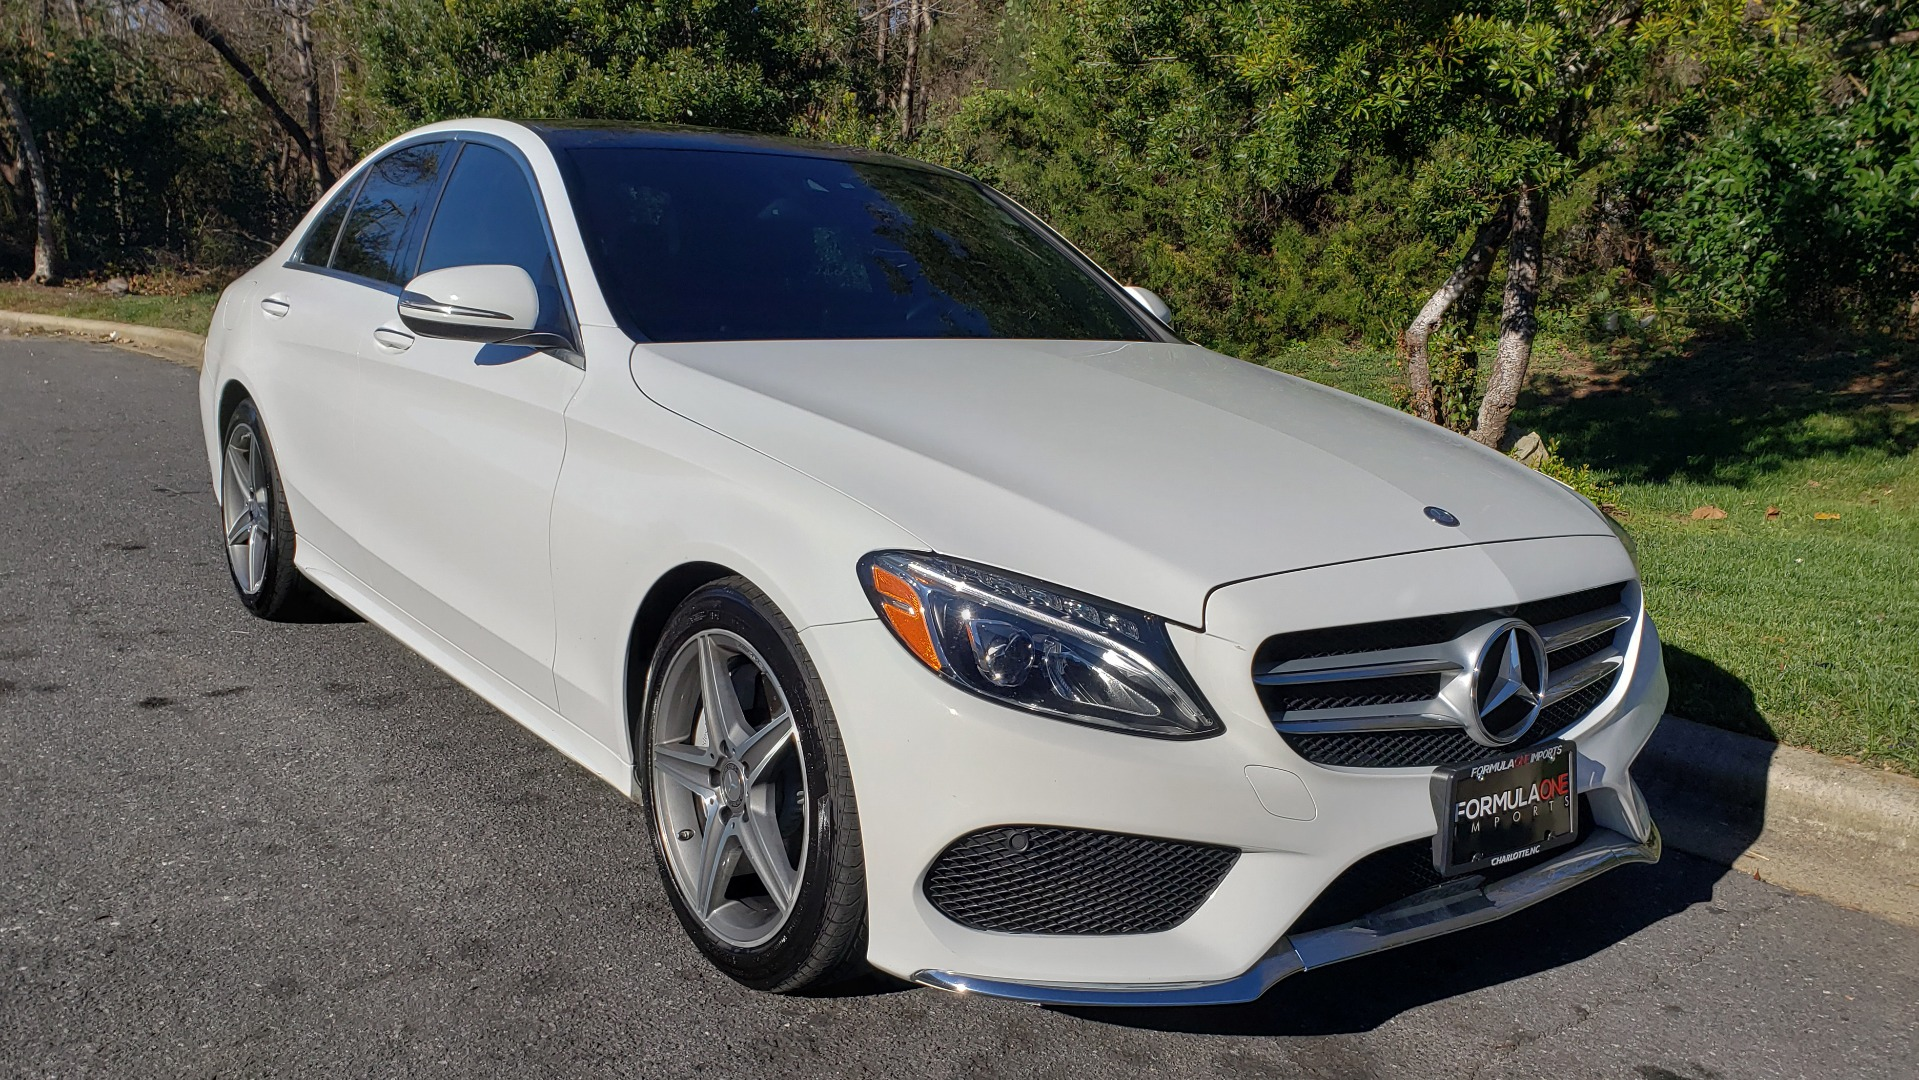 Used 2017 Mercedes-Benz C-CLASS C 300 SPORT / PREM PKG / PANO-ROOF / NAV / HTD STST / REARVIEW for sale Sold at Formula Imports in Charlotte NC 28227 4